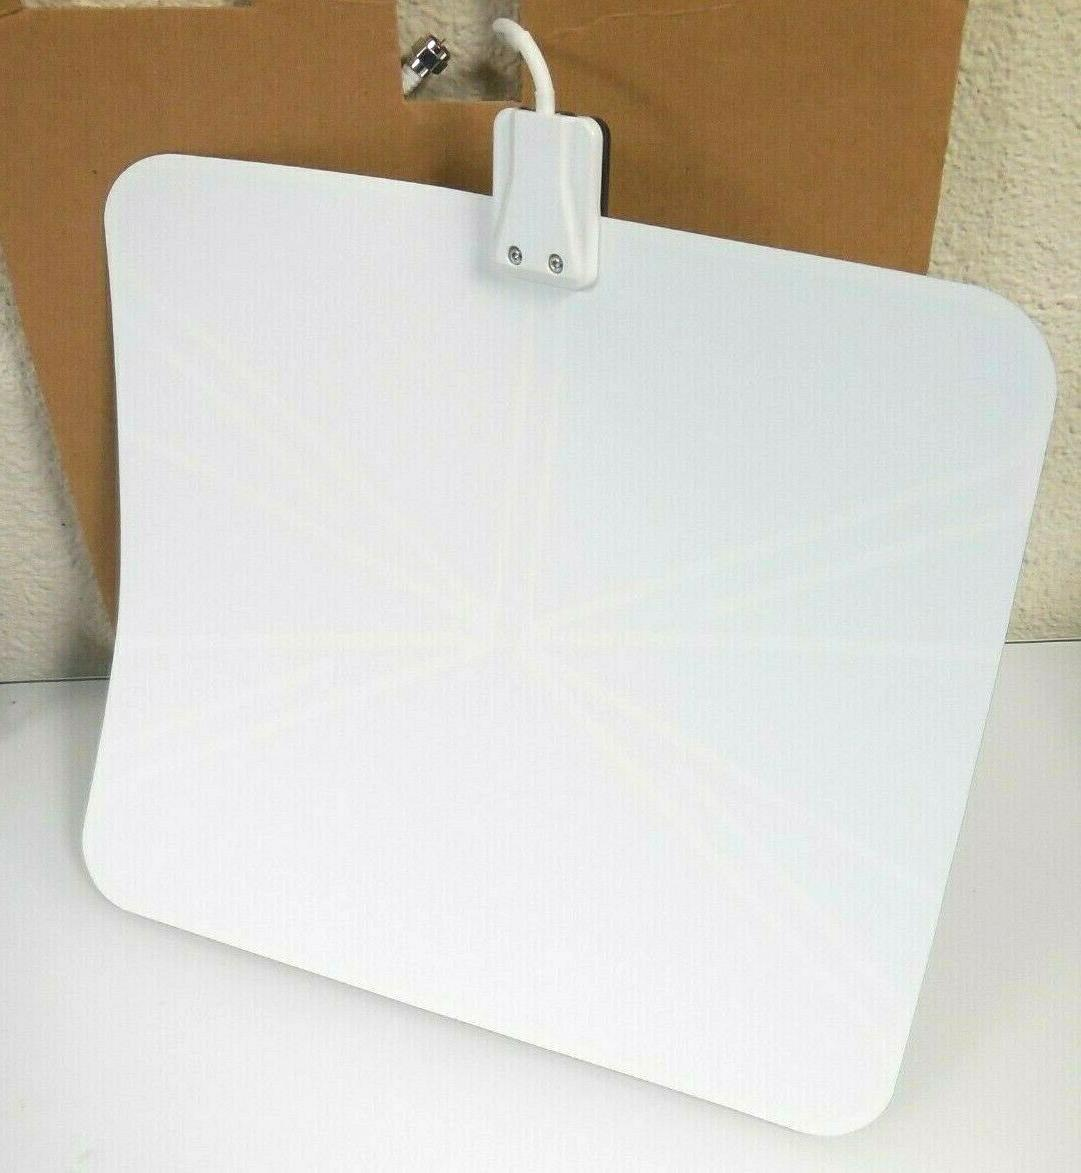 Winegard Amped FL5500A Amplified Indoor Antenna